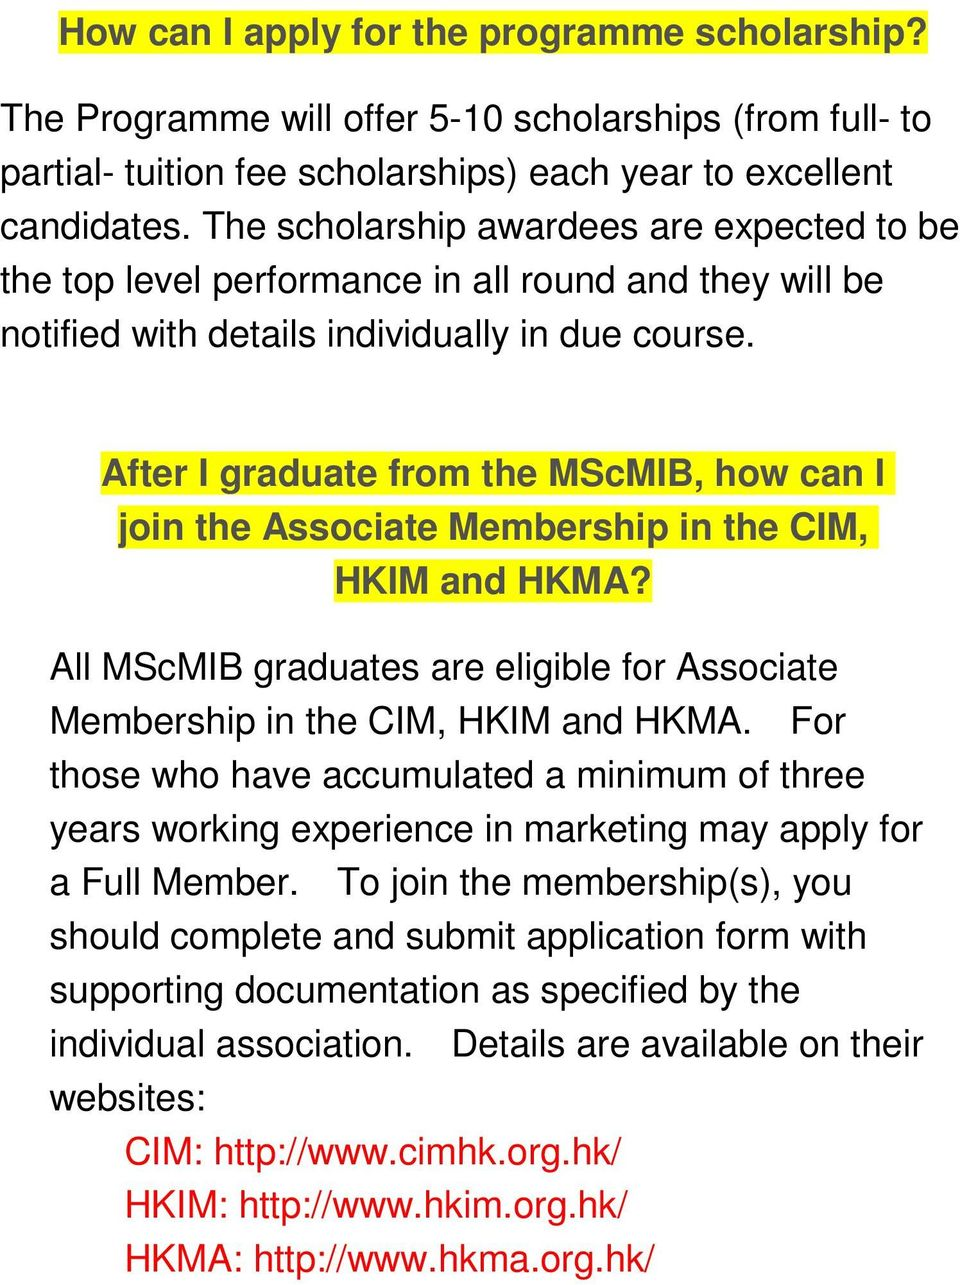 After I graduate from the MScMIB, how can I join the Associate Membership in the CIM, HKIM and HKMA? All MScMIB graduates are eligible for Associate Membership in the CIM, HKIM and HKMA.